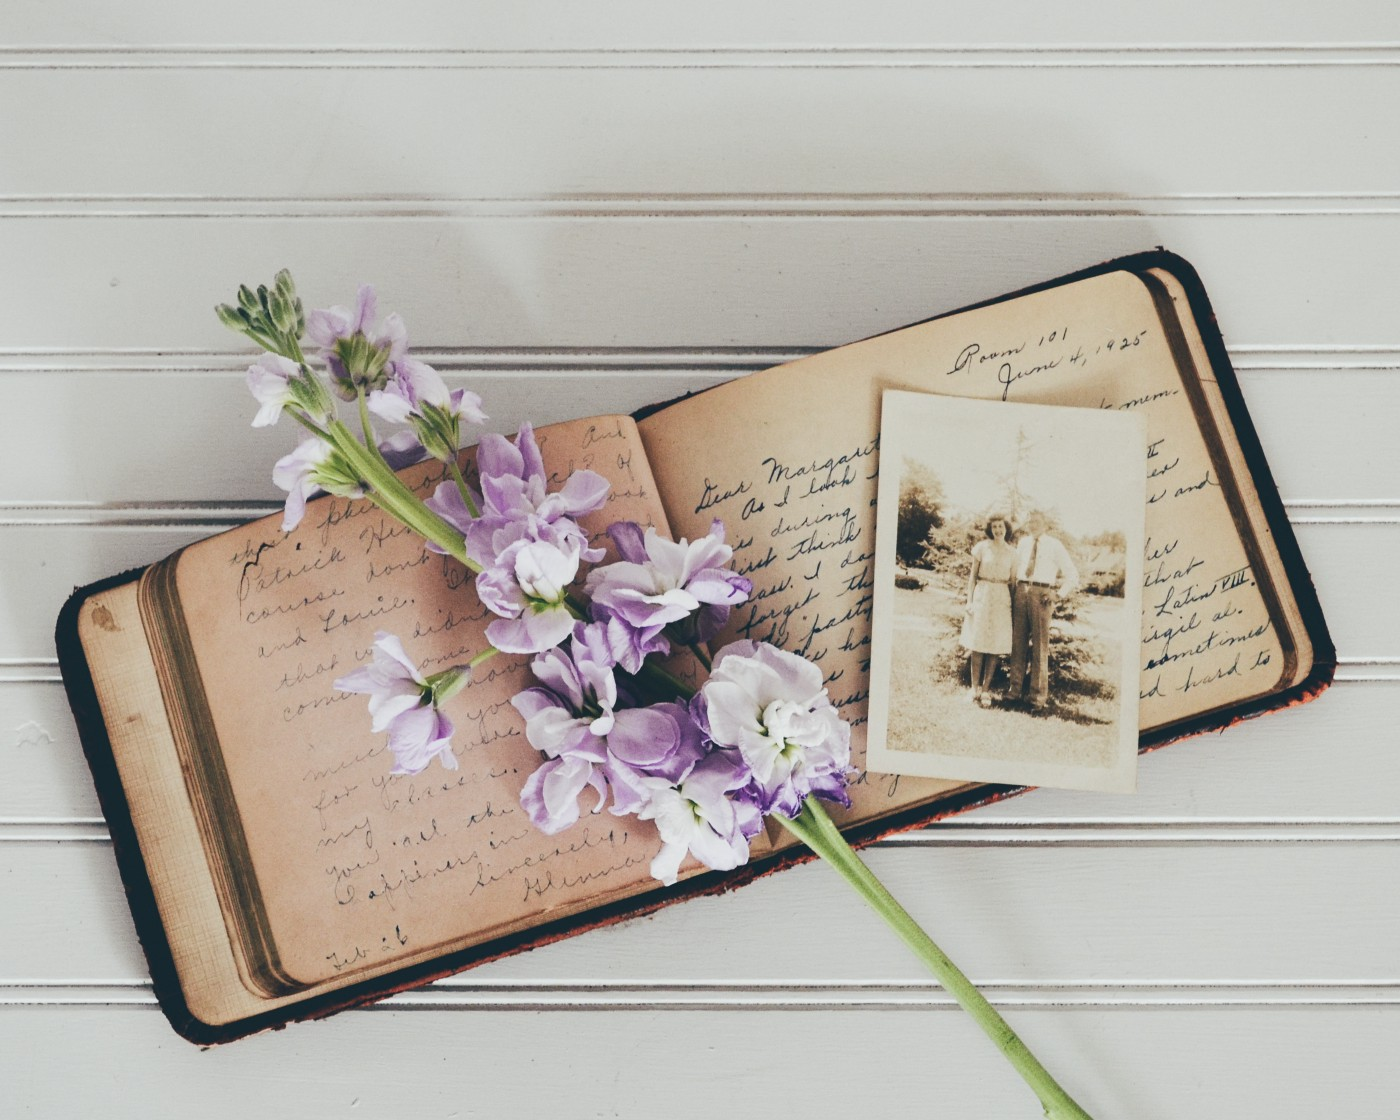 Old journal with handwritten text. A photo sits on top, it pictures a man and woman. Purple flowers also rest on top of it.